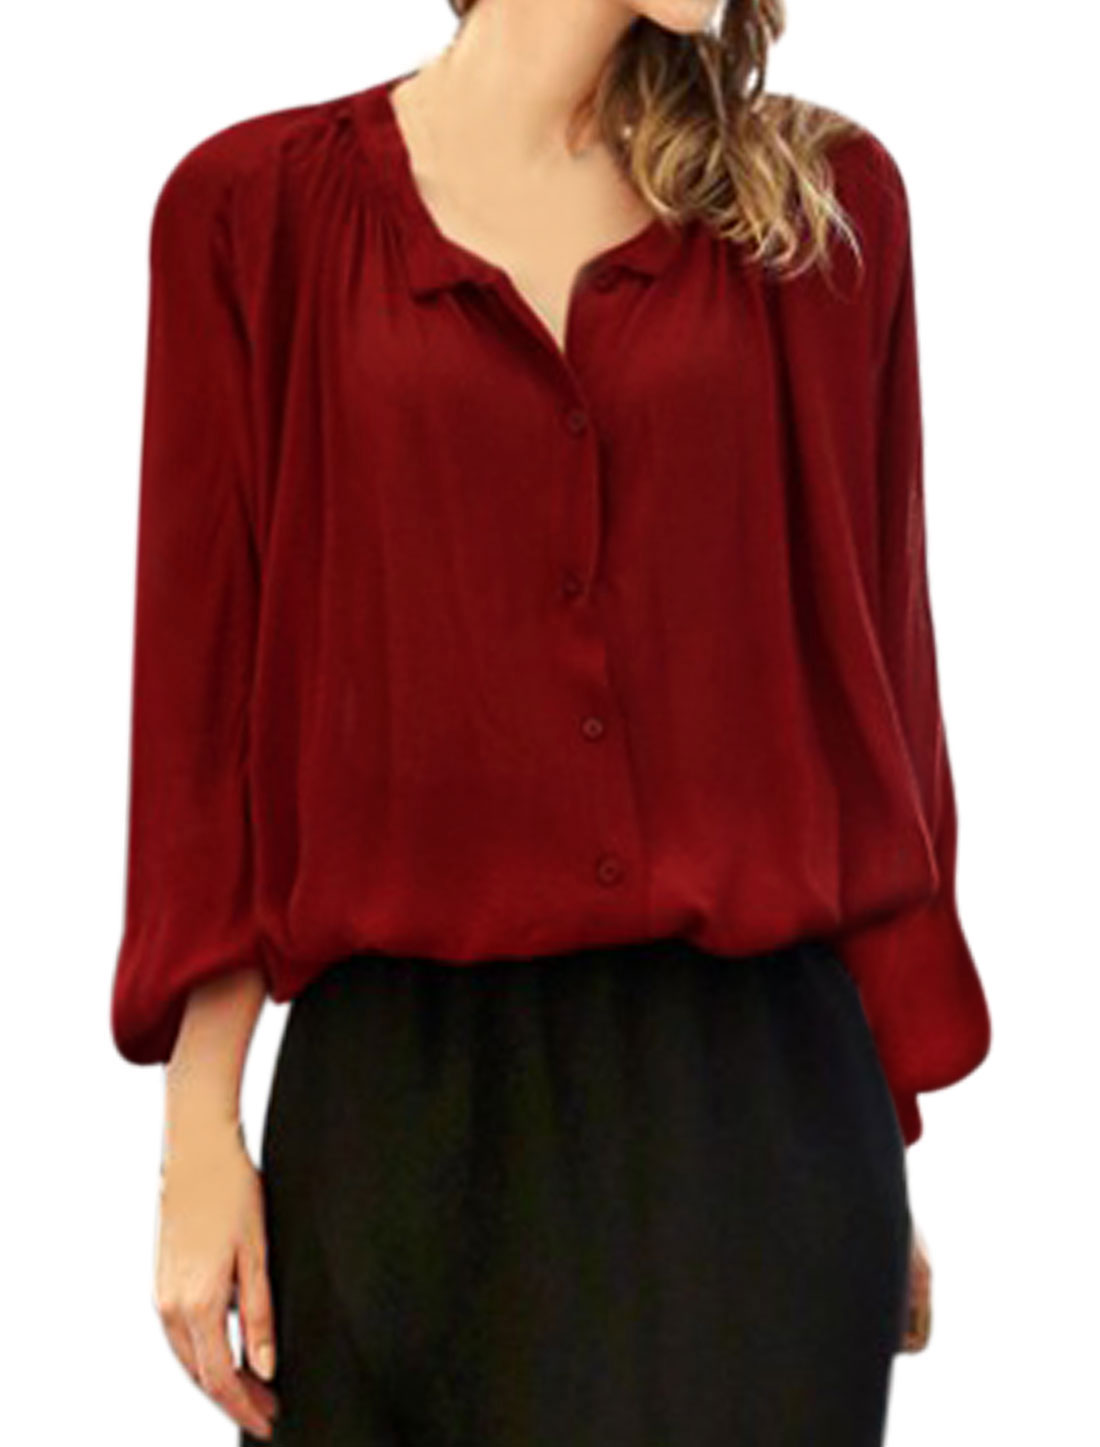 Lady Stand Collar Long Batwing Sleeves Button Closed Drawstring Hem Blouse Red M